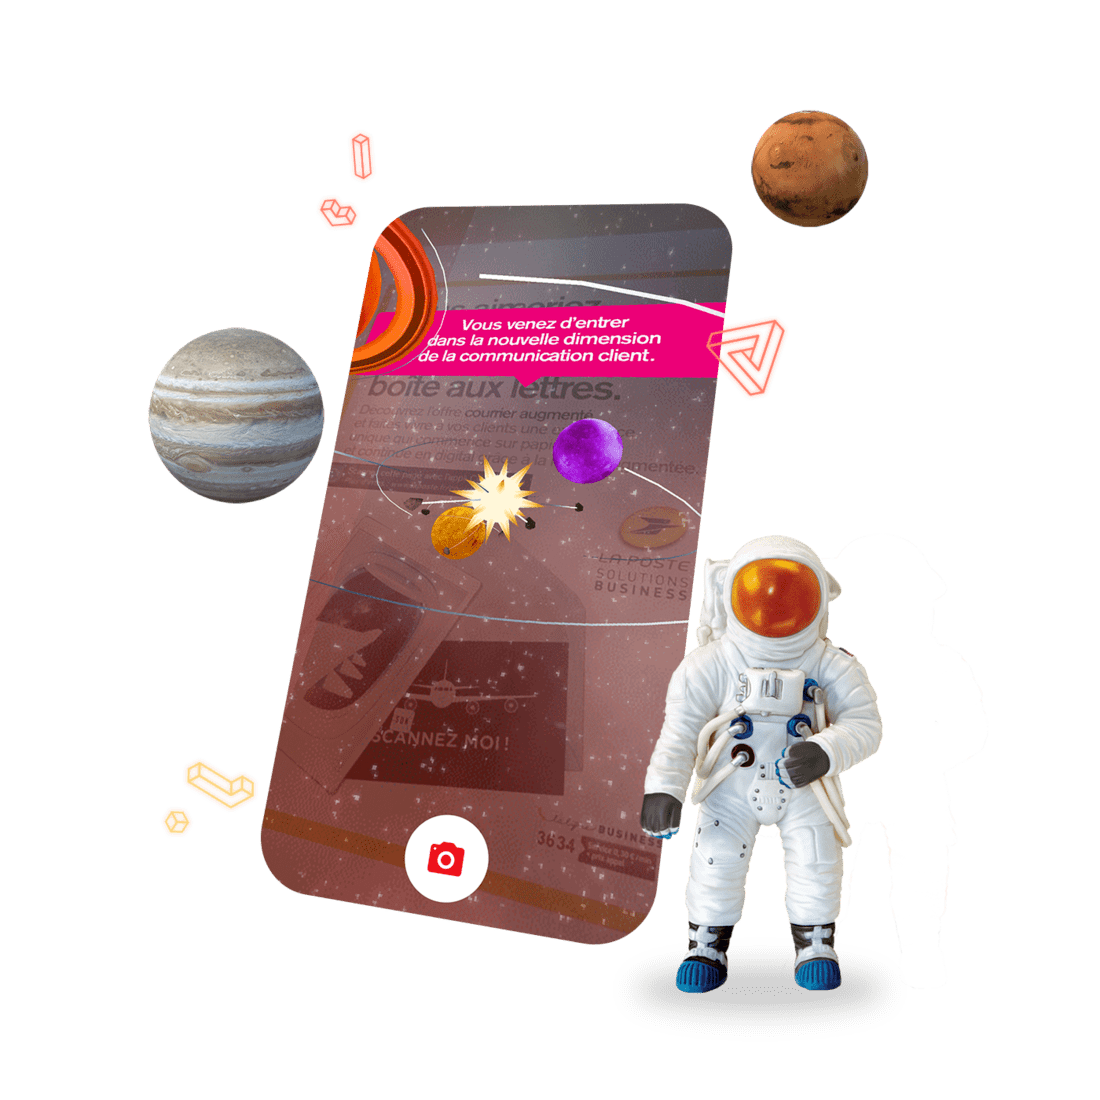 Smartphone, planets and astronaut expressing the new dimension of customer communication